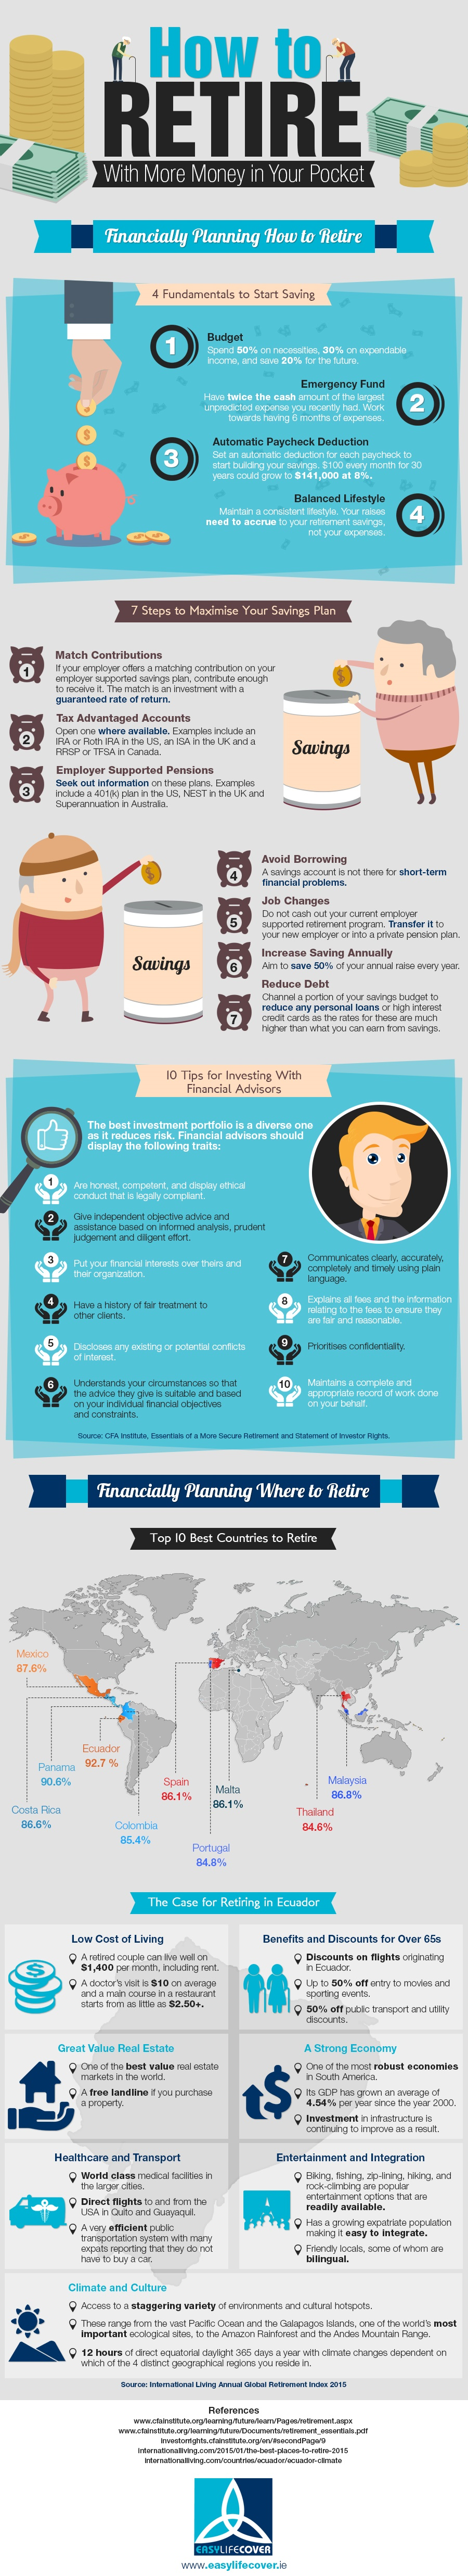 https://www.easylifecover.ie/wp-content/uploads/2015/04/How-to-Retire-with-more-money-Infographic.jpg